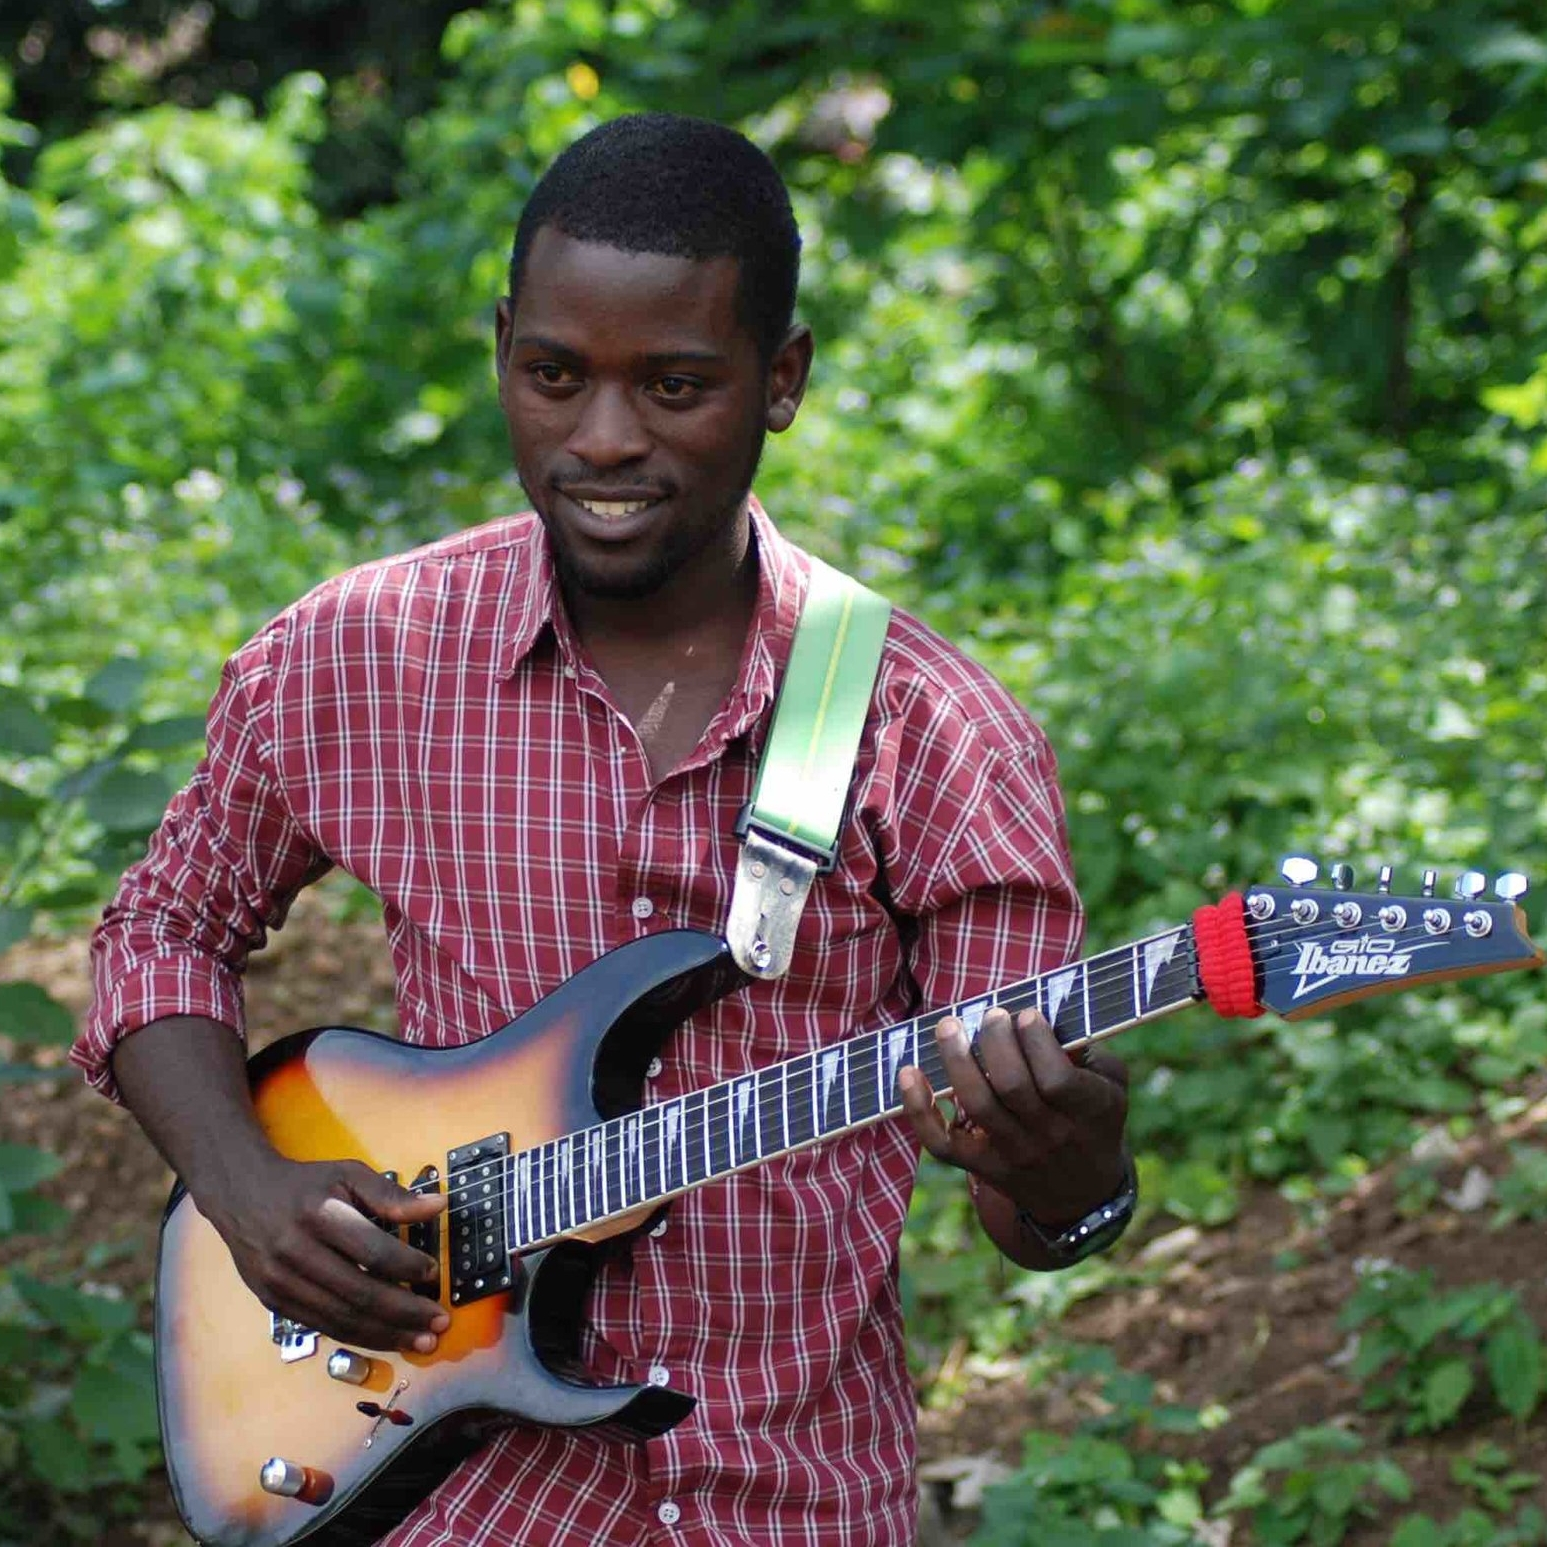 ELKANA GEORGE - Elkana taught himself about music and to play guitar, as well as learning in church. He was later taught guitar by Gibson Bukuru. He plays lead guitar in the CAC fusion band, and his highlight has been performing at Sauti za Busara 2017 and 2018. He has also performed at Twenzetu kwa Yesu at the Jamhuri Stadium, Arusha and the Extravaganza Festival, National Stadium, Dar es Salaam.